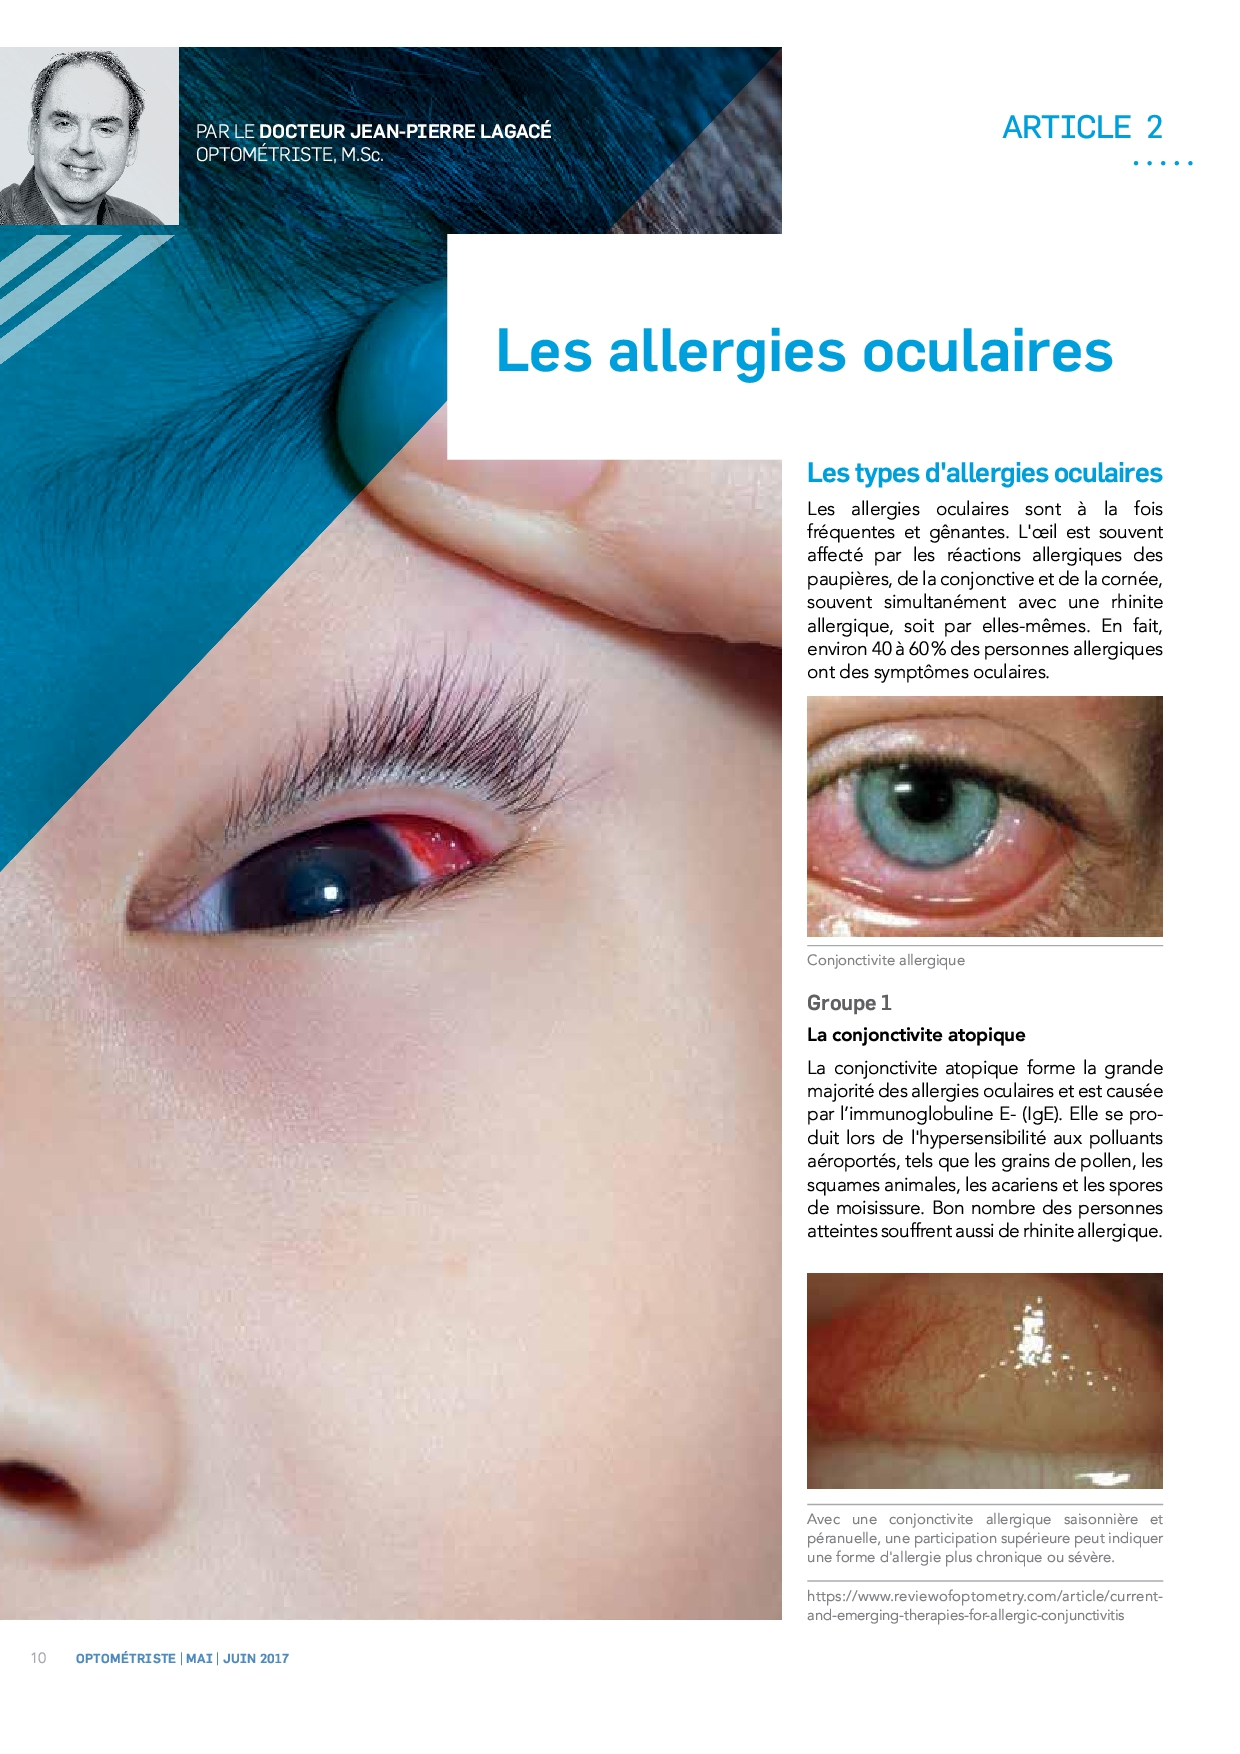 Les allergies oculaires